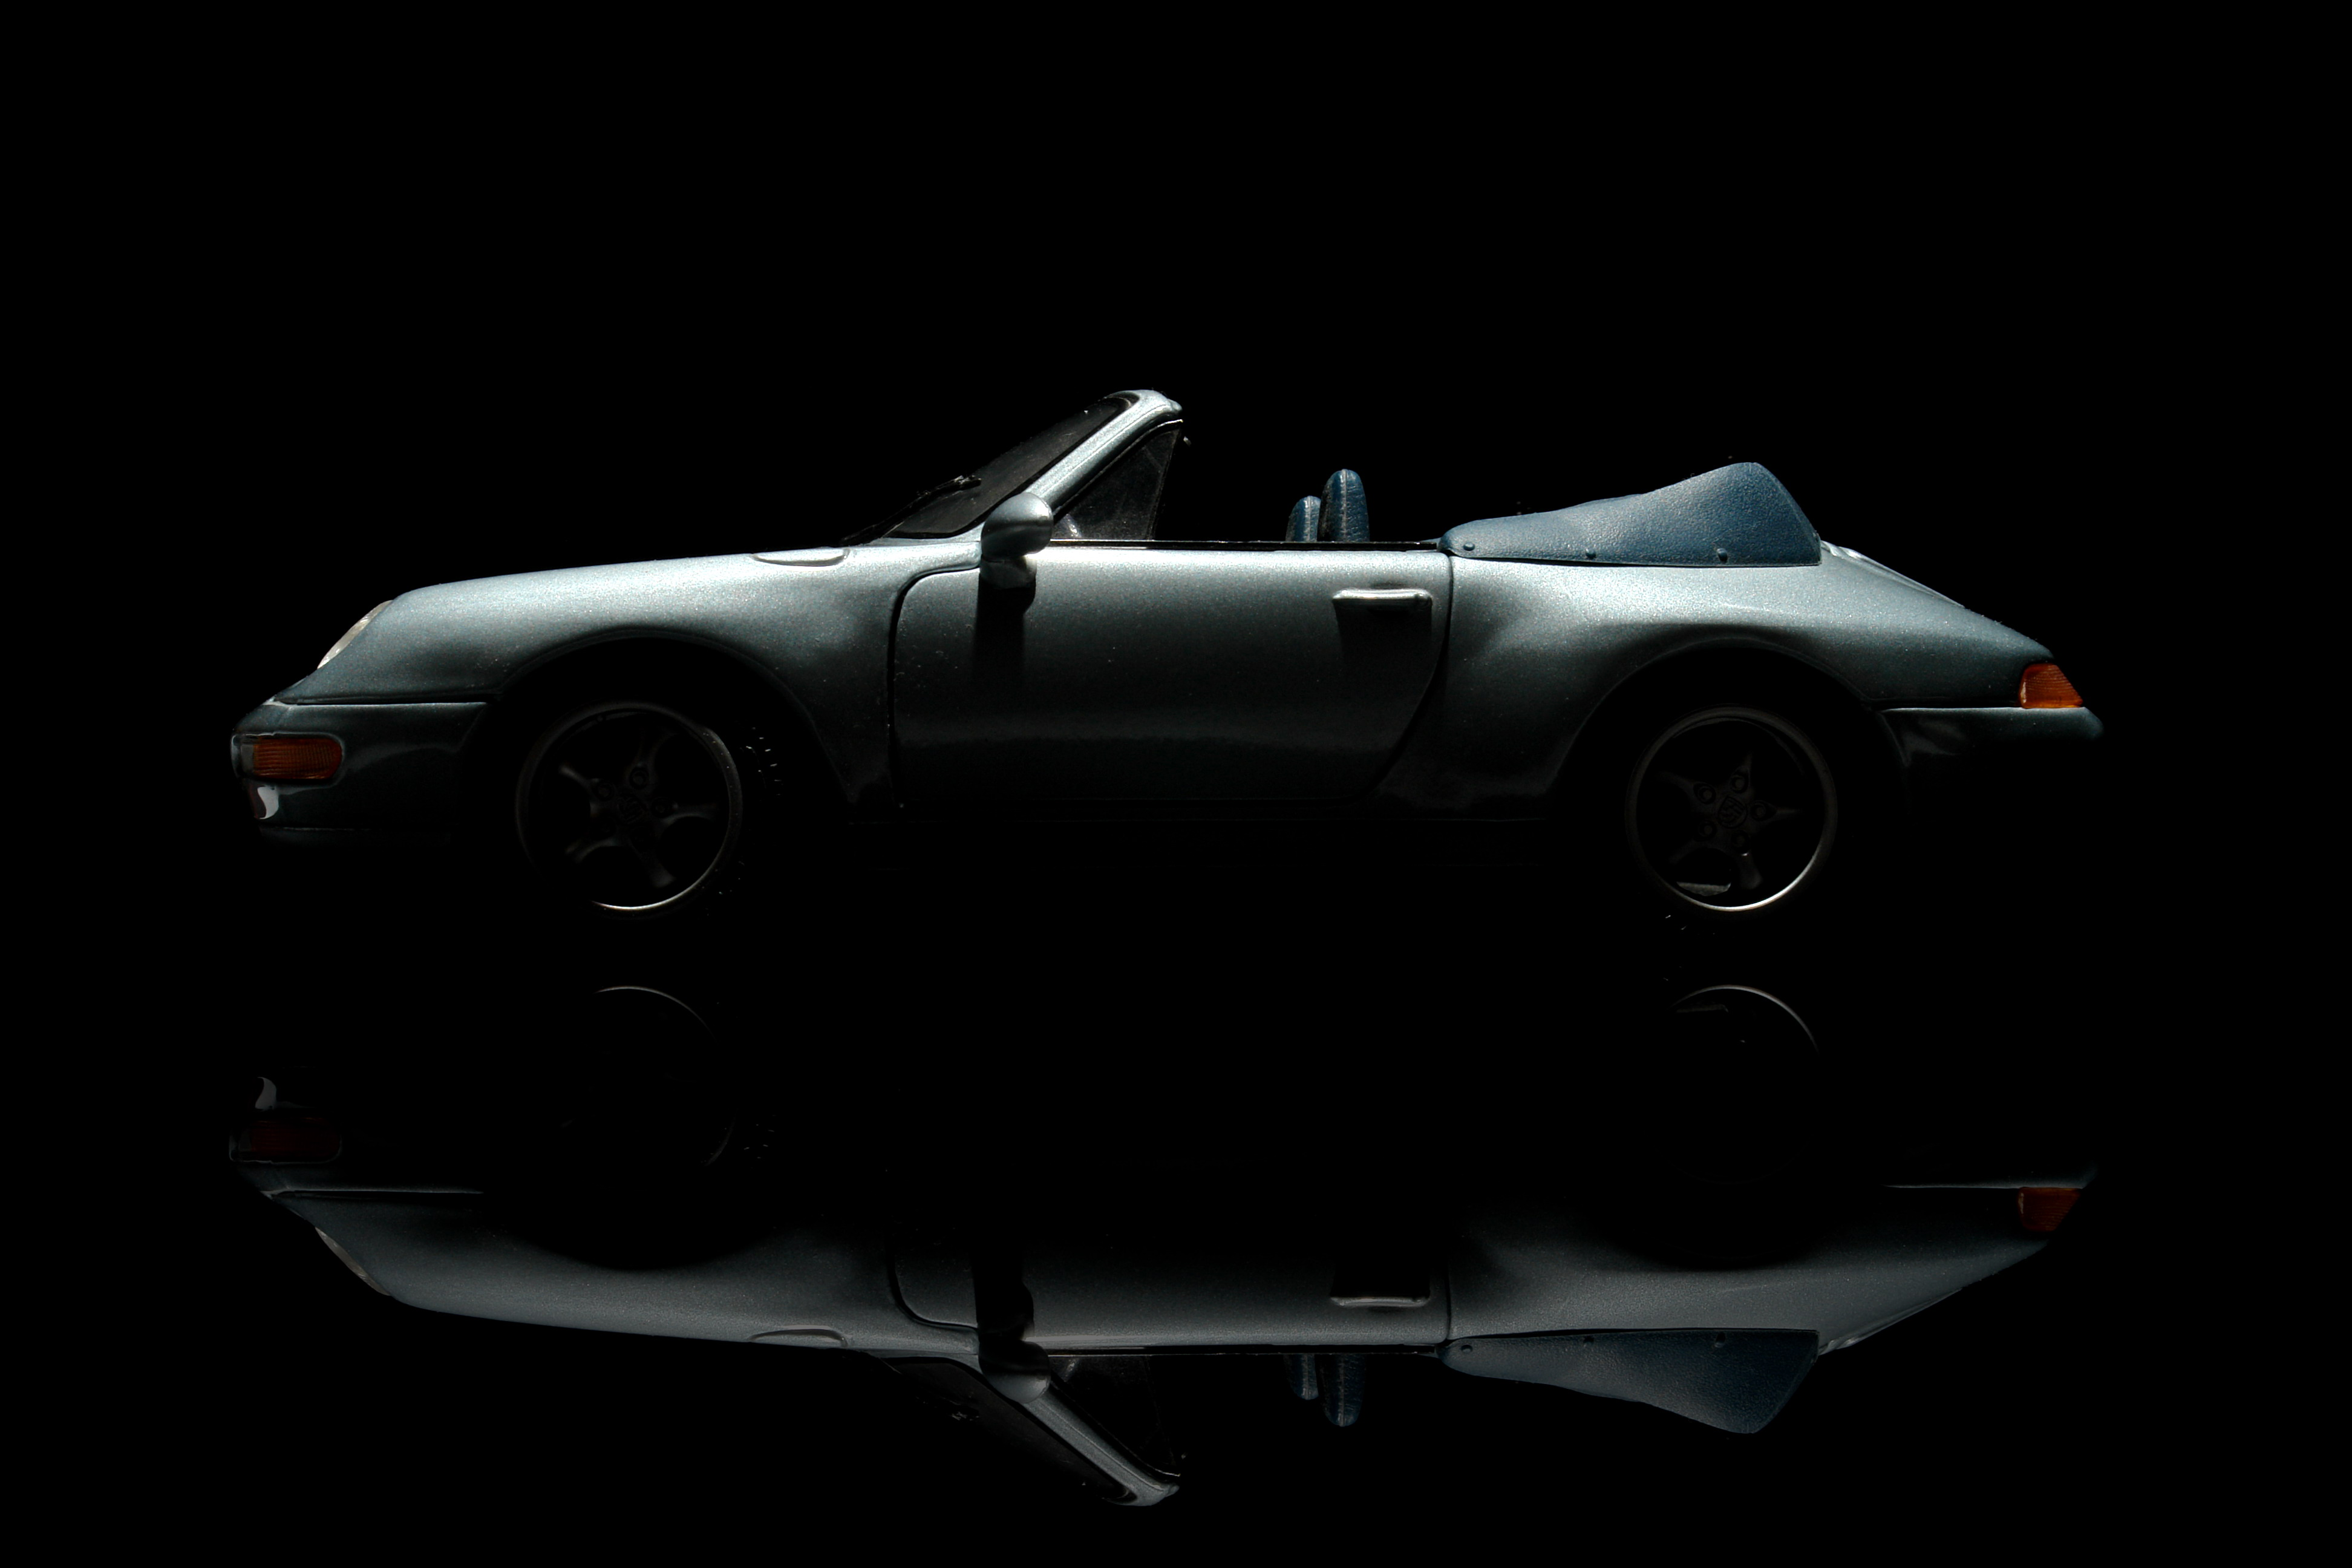 Porsche 911 Carrera cabriolet | Flickr - Photo Sharing!